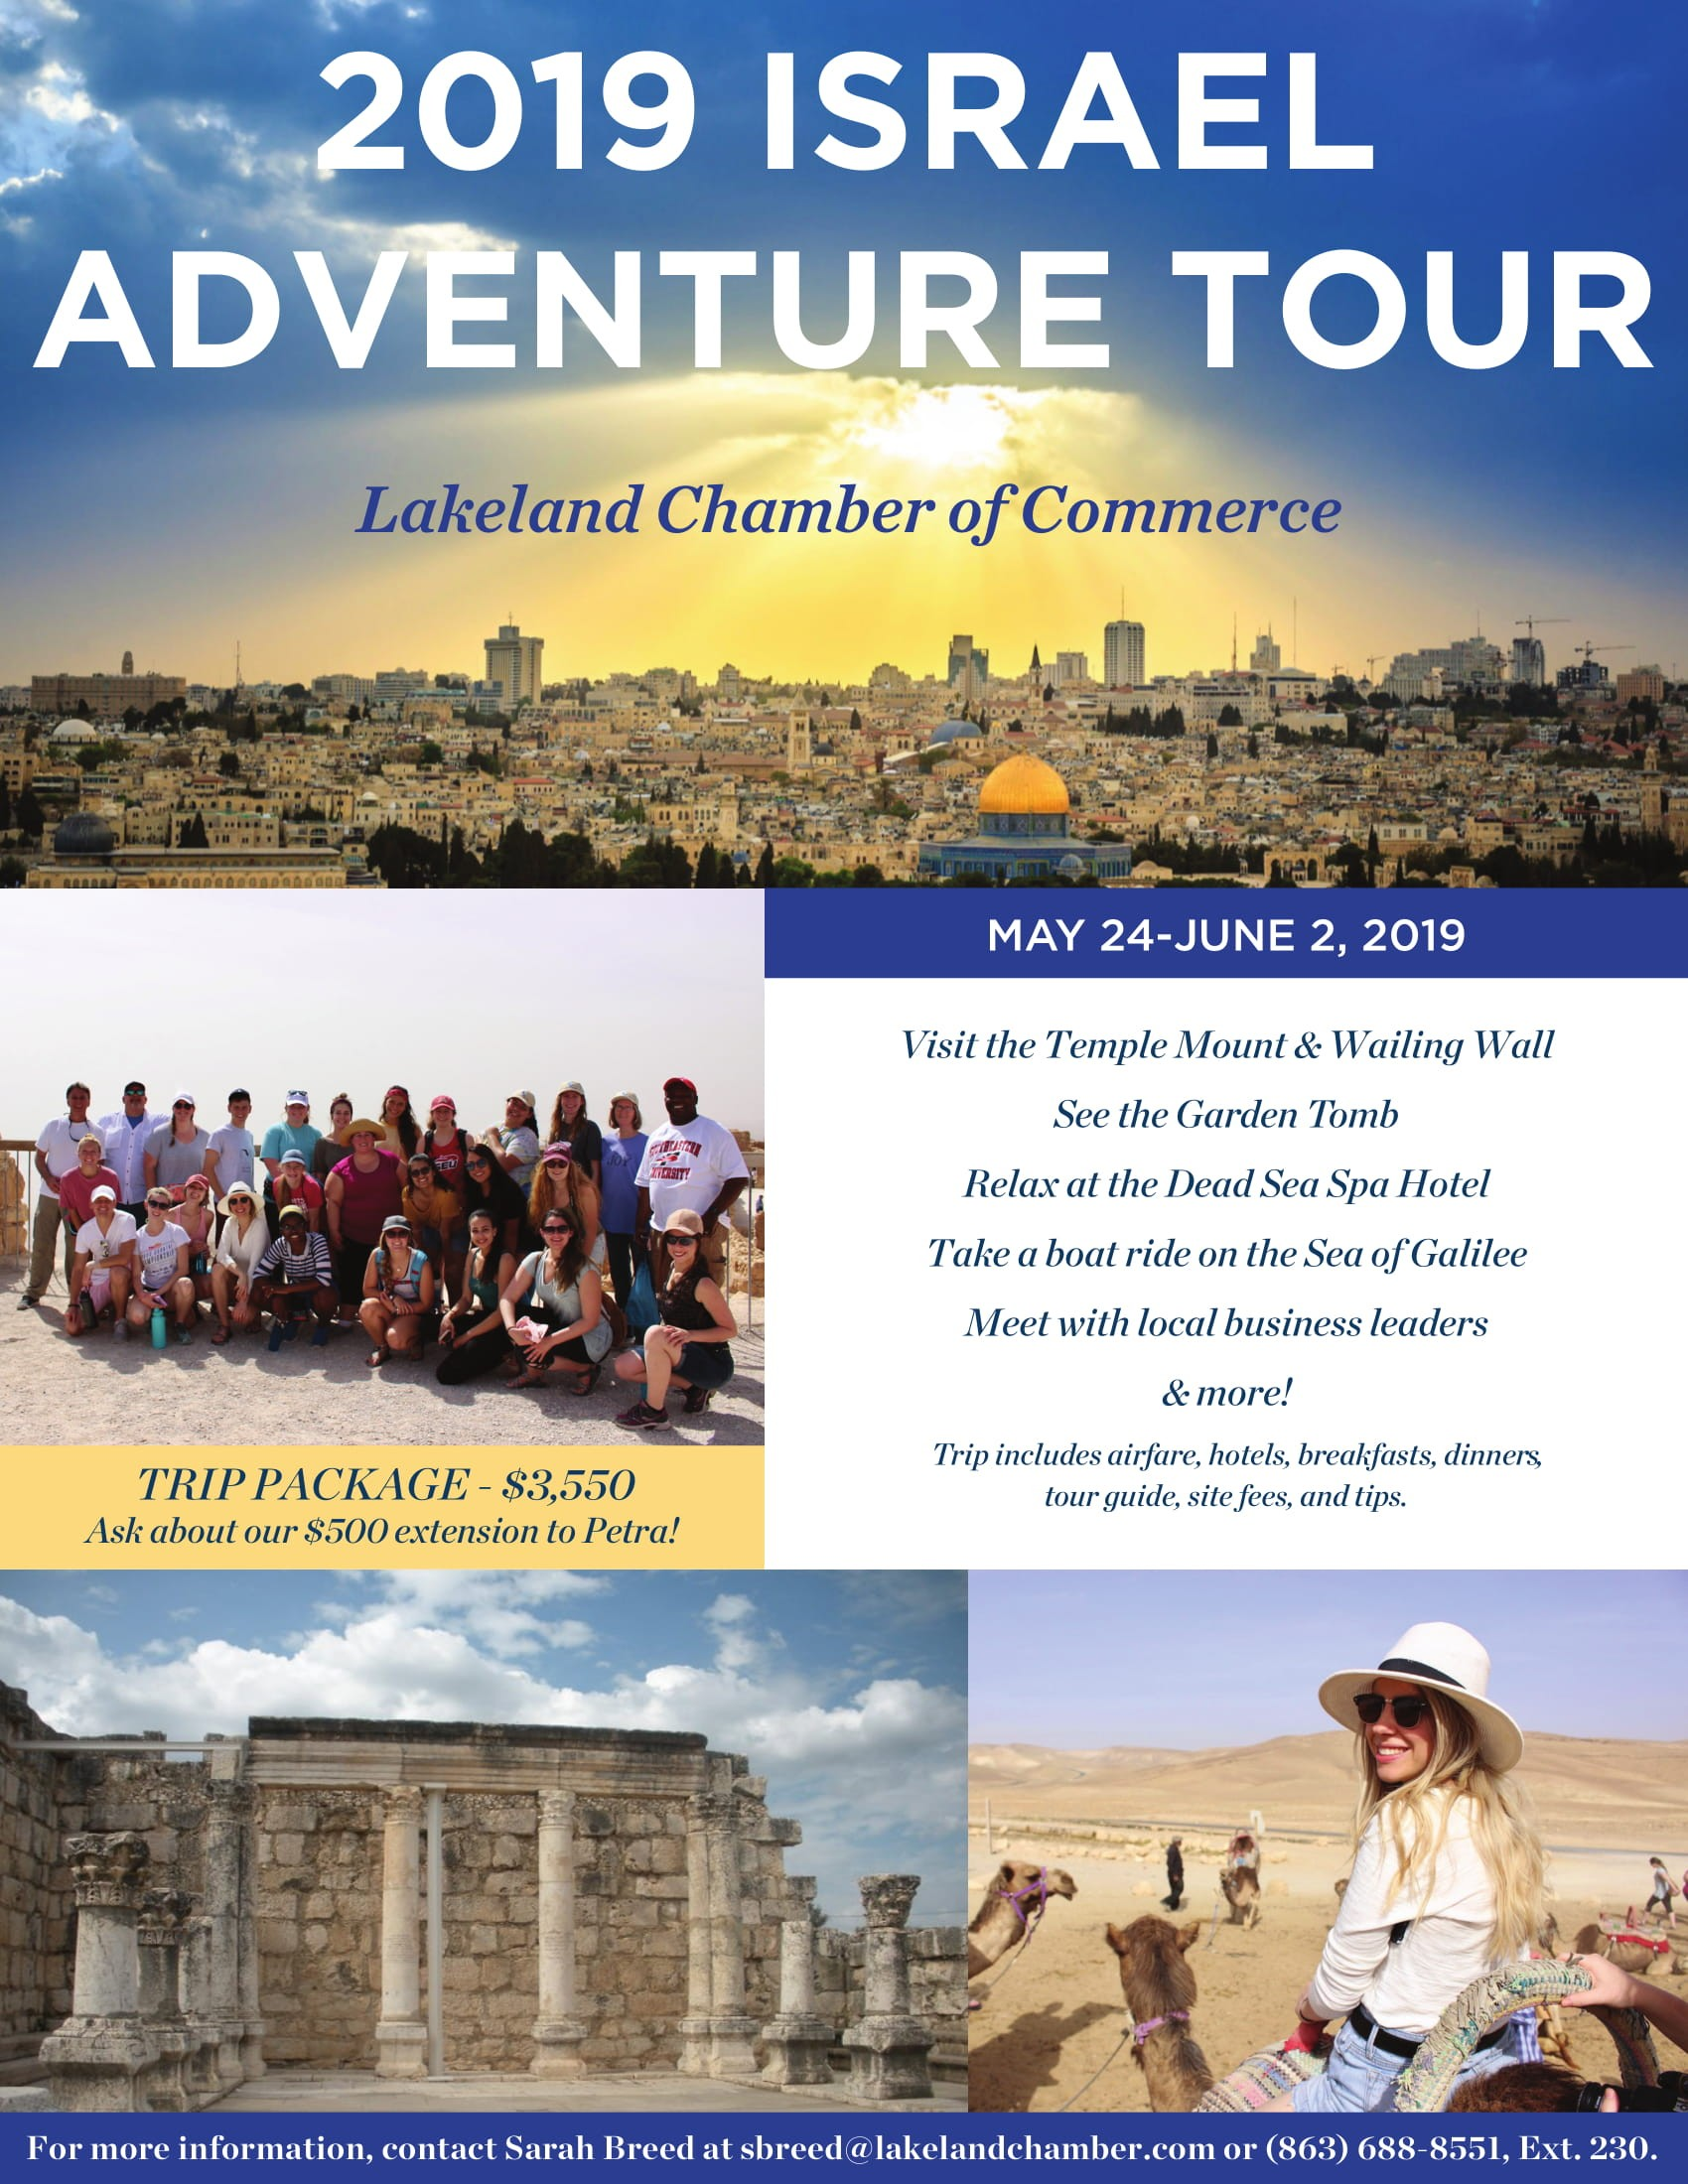 March 2019 Calendar Landscape Más Arriba-a-fecha Travel with the Lakeland Chamber the israel Adventure May 24 Of March 2019 Calendar Landscape Mejores Y Más Novedosos 2015 2016 2017 Calendar 4 Three Year Printable Pdf Calendars